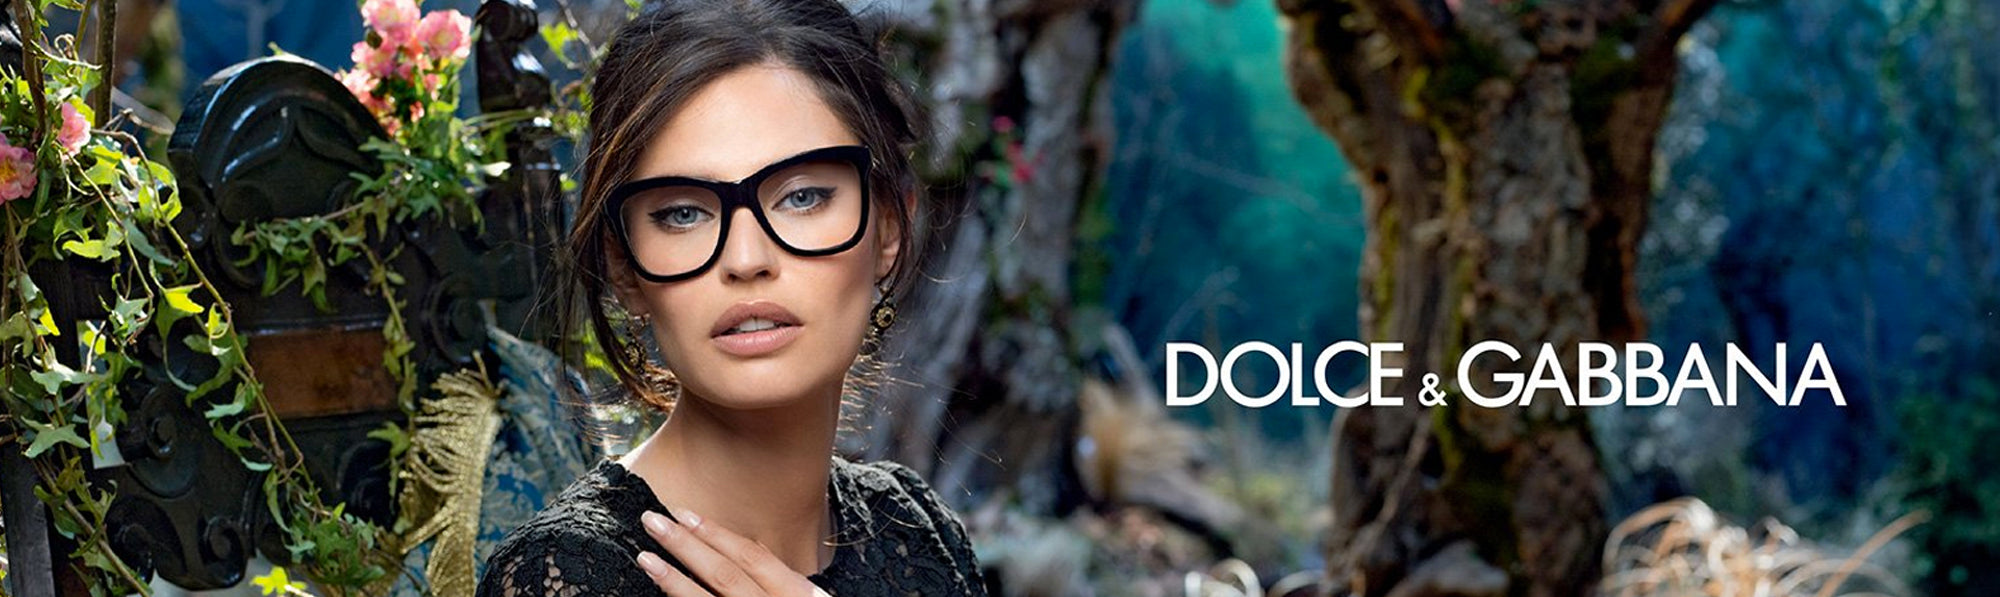 Dolce & Gabbana Optical